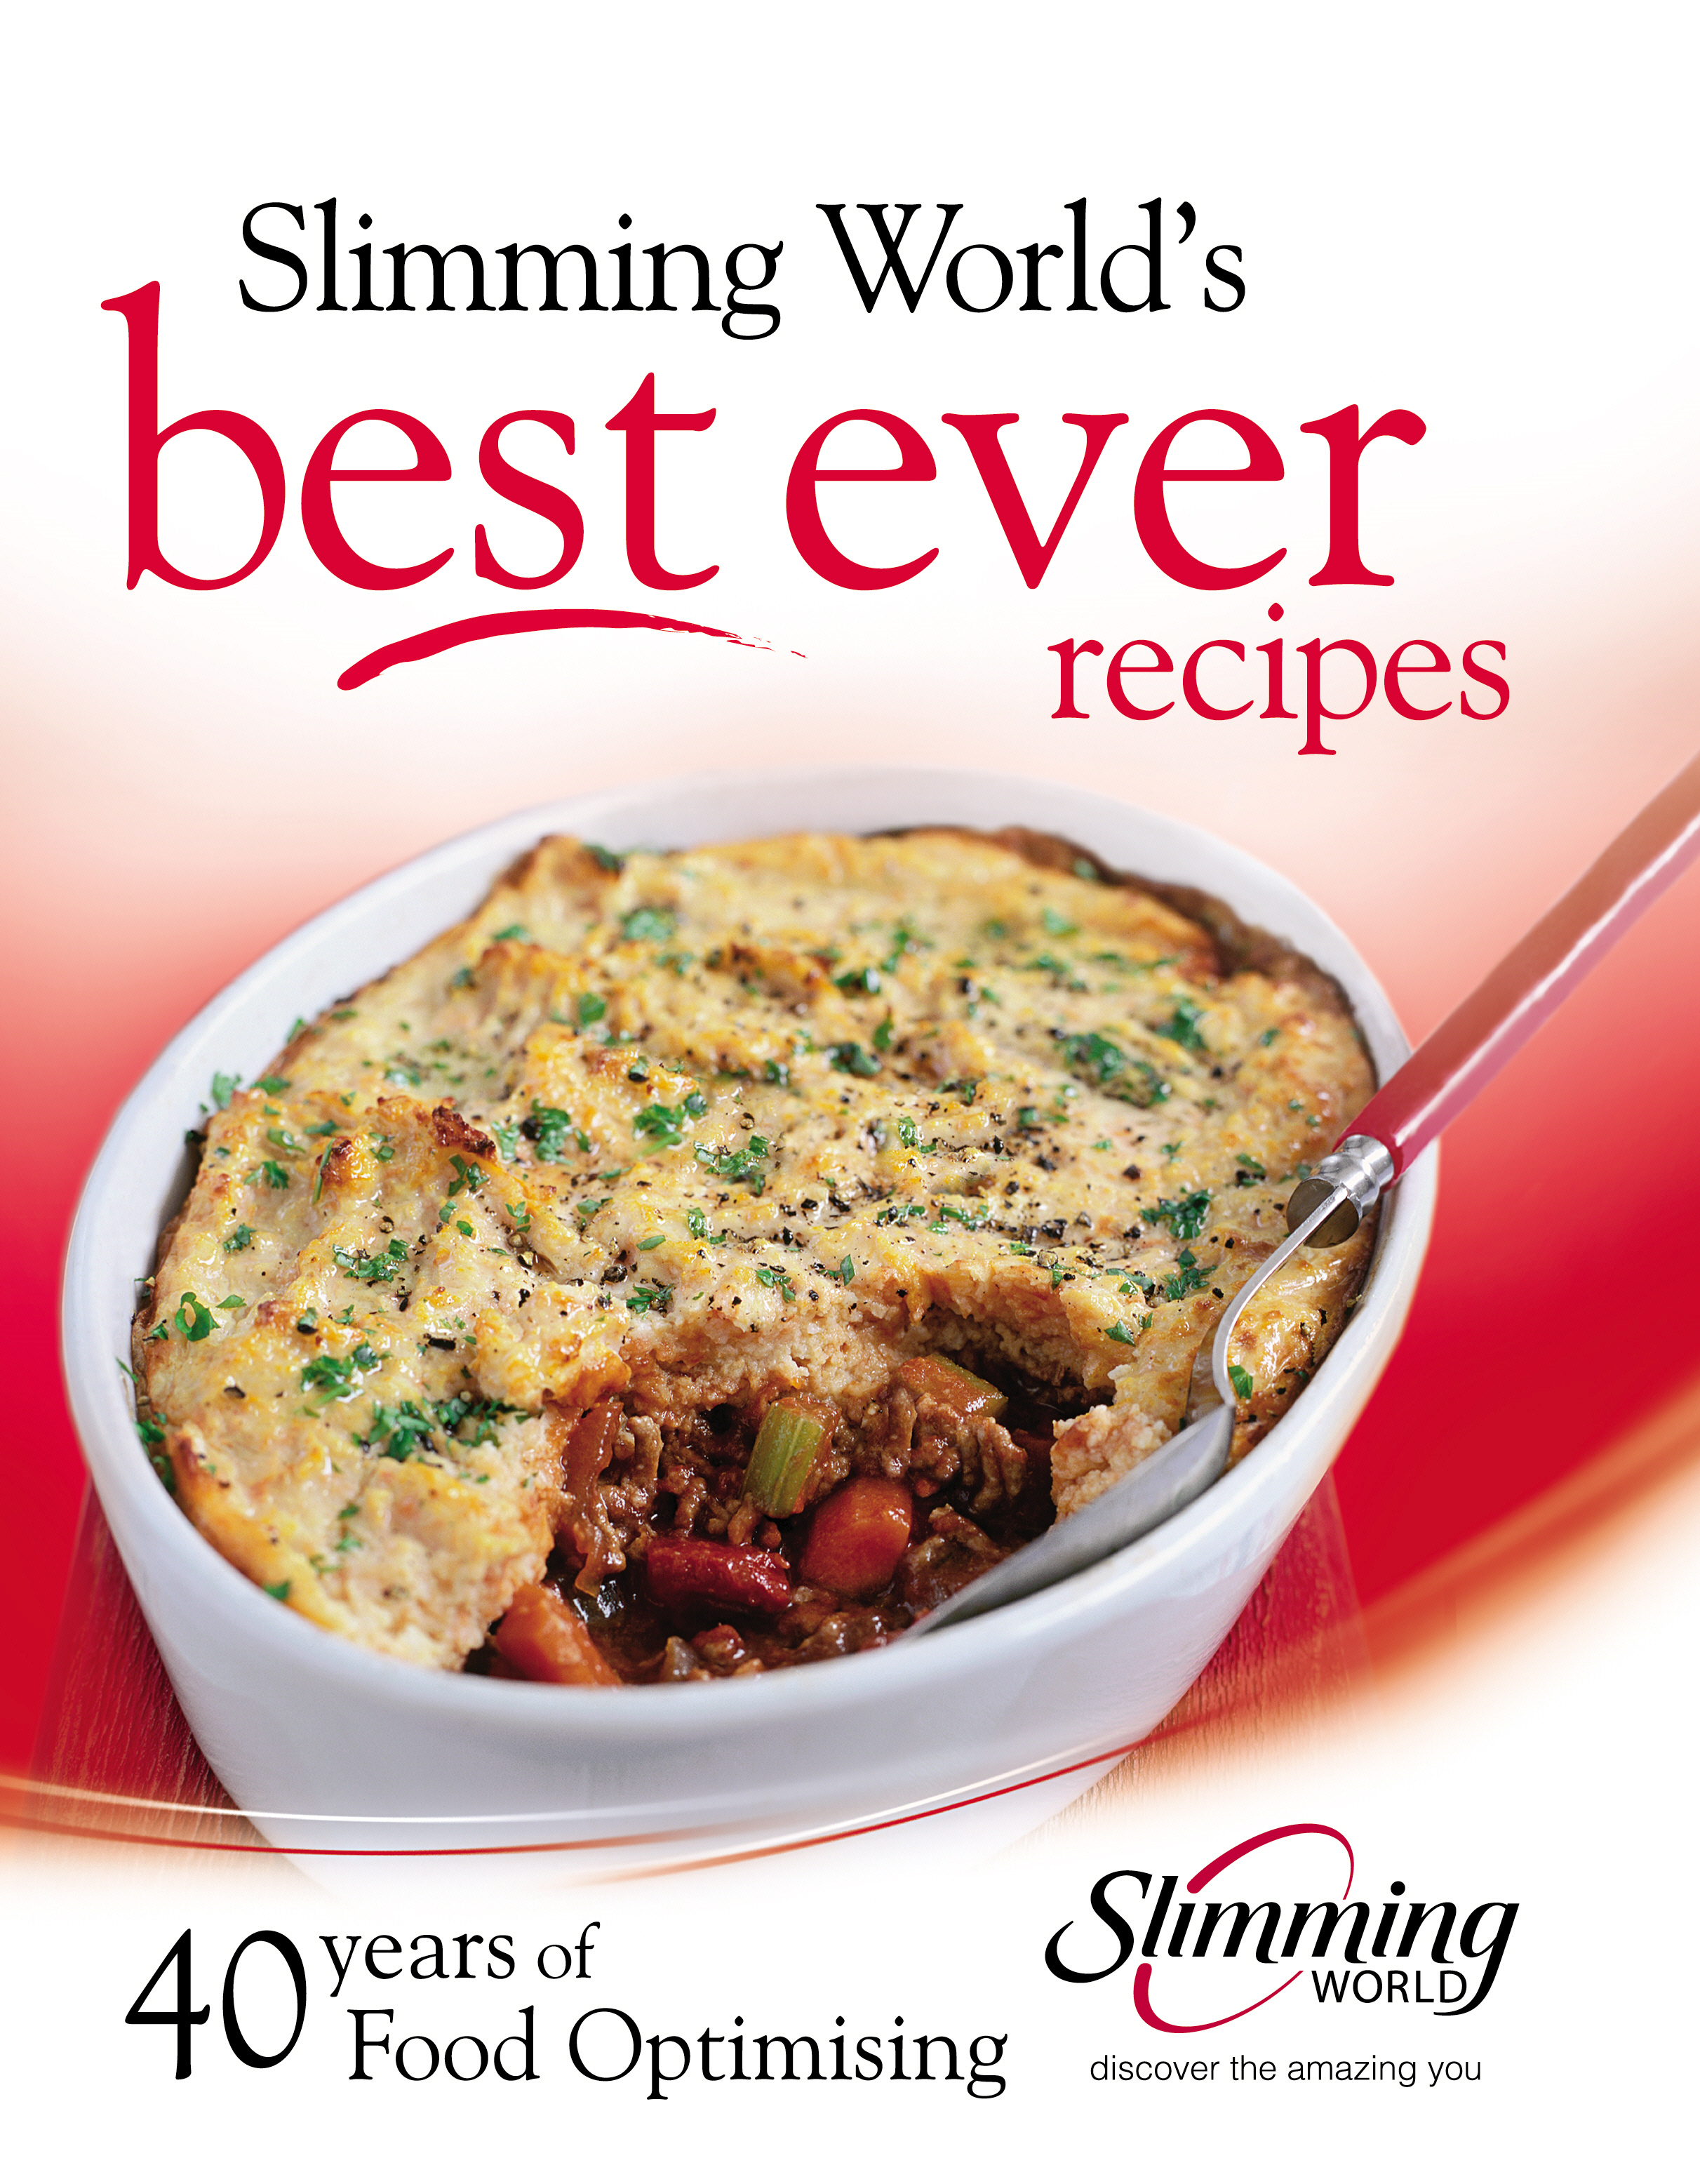 Best ever recipes 40 years of Food Optimising